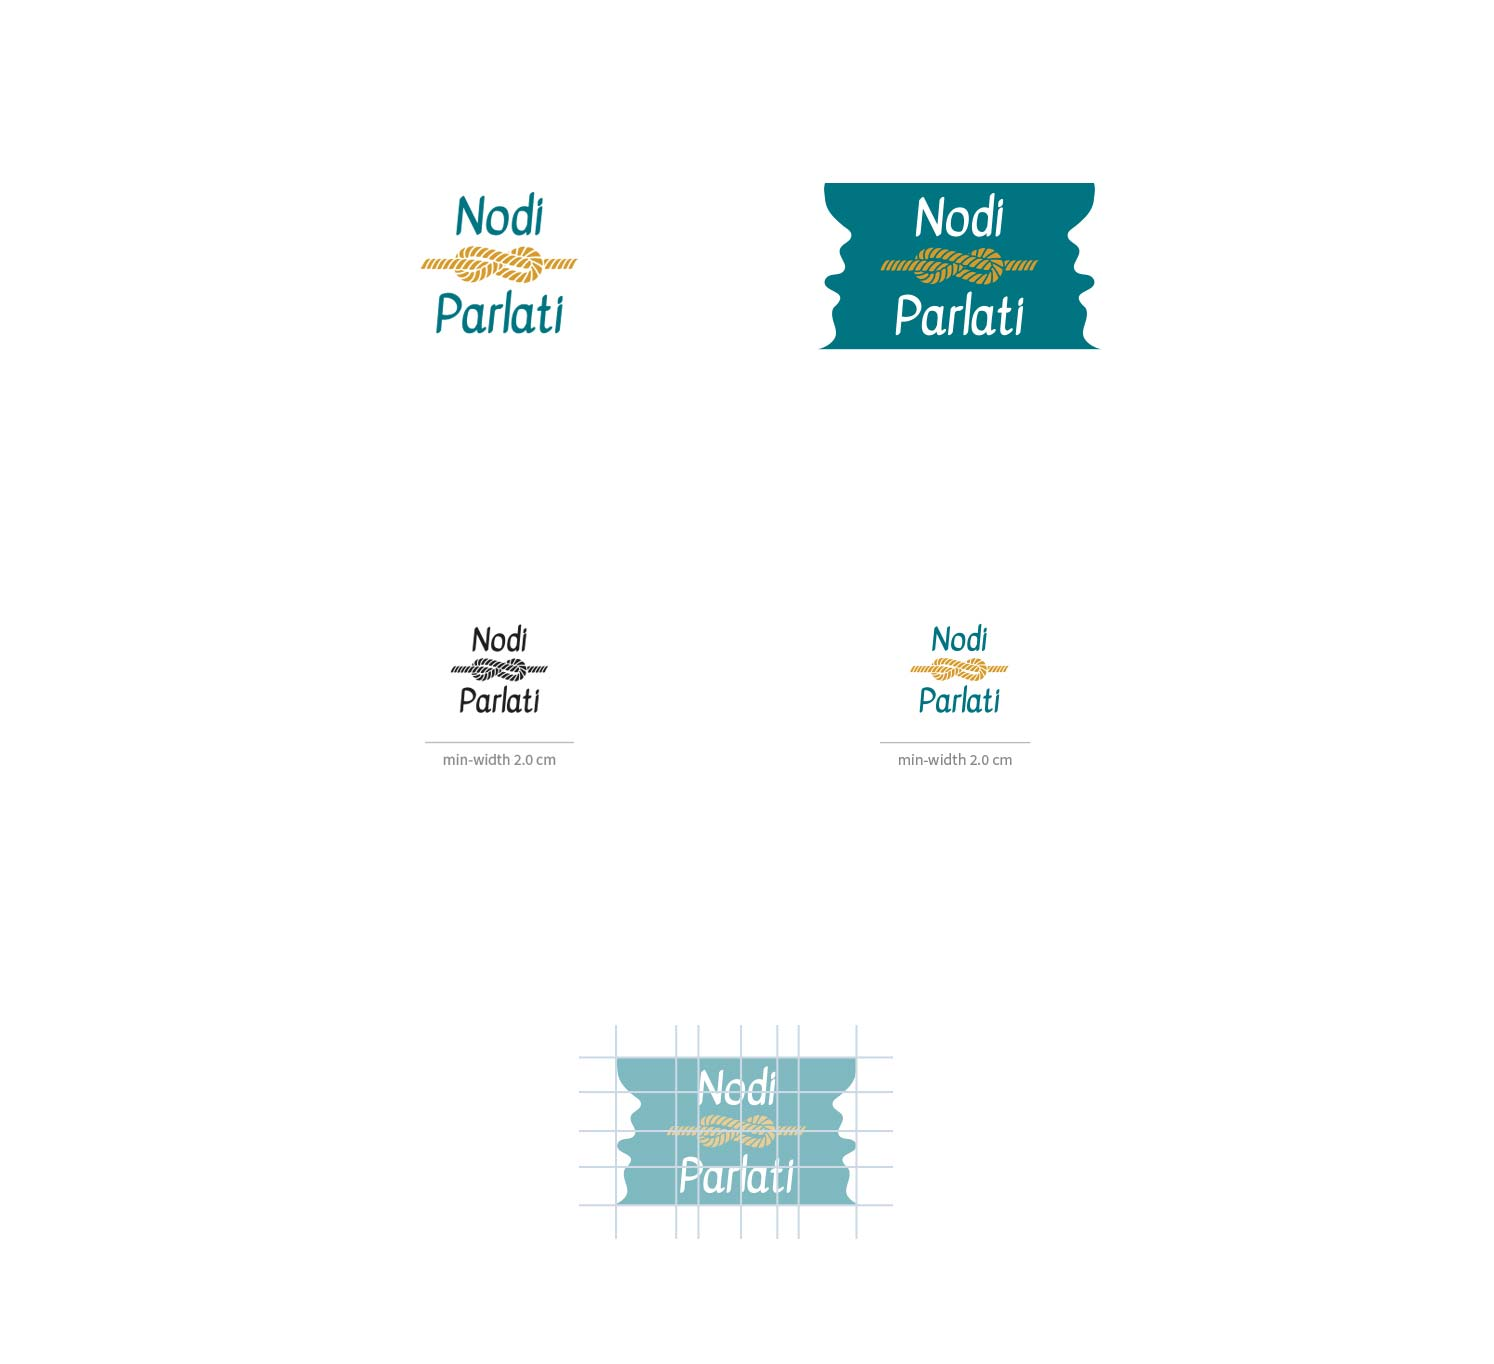 Brand identity design-logo formats and versions